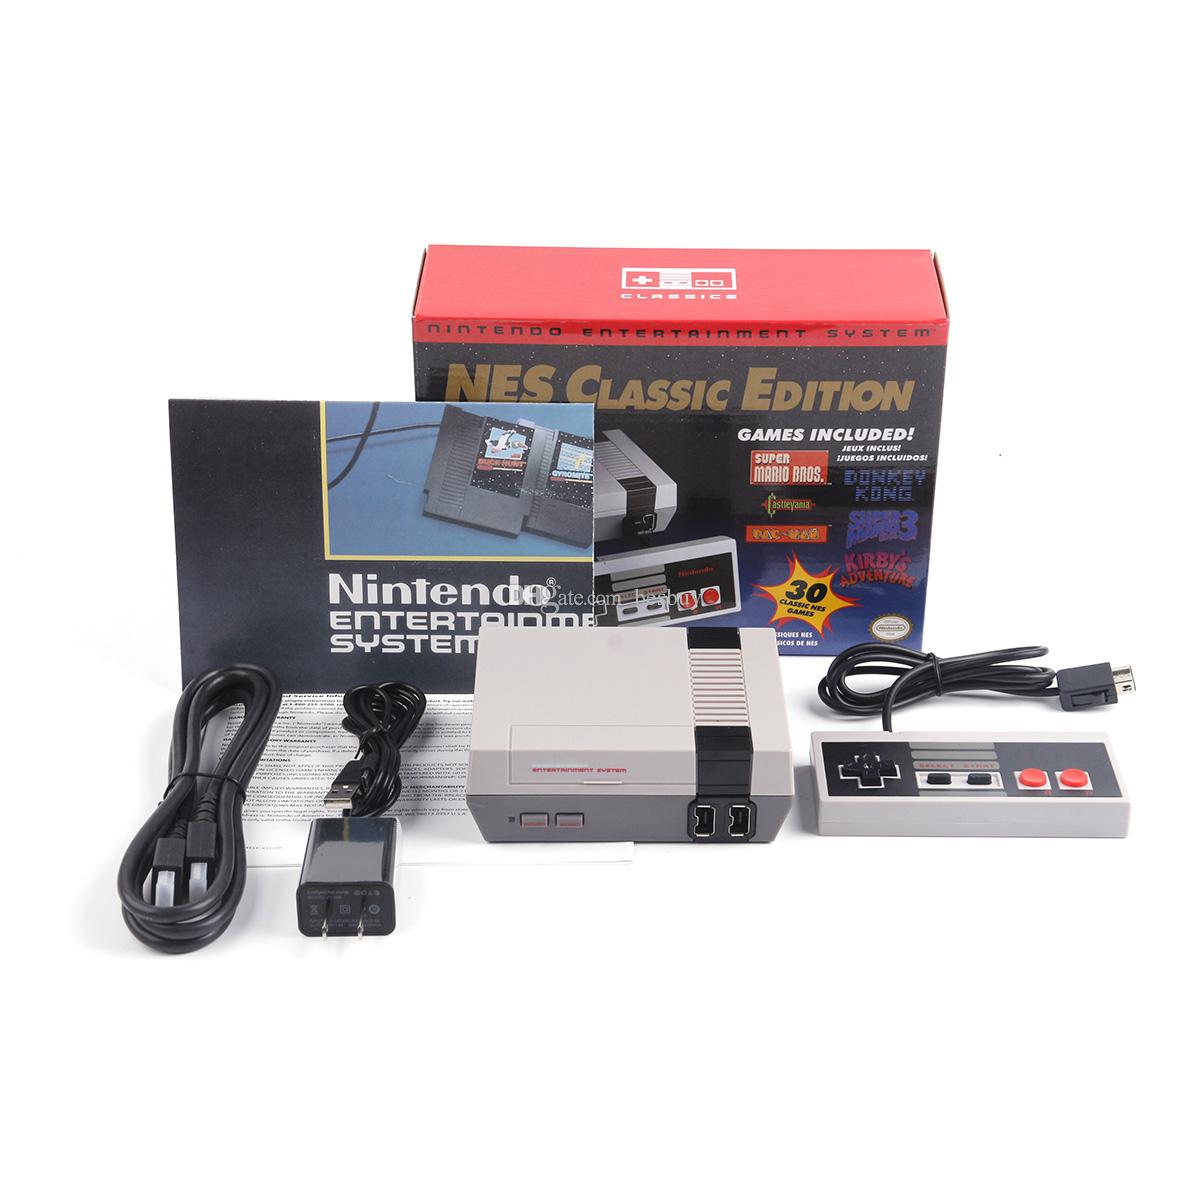 NEW WII Classic Game TV Video Handheld Console Entertainment System Games For 30 Edition Model NES Mini Game Consoles free DHL